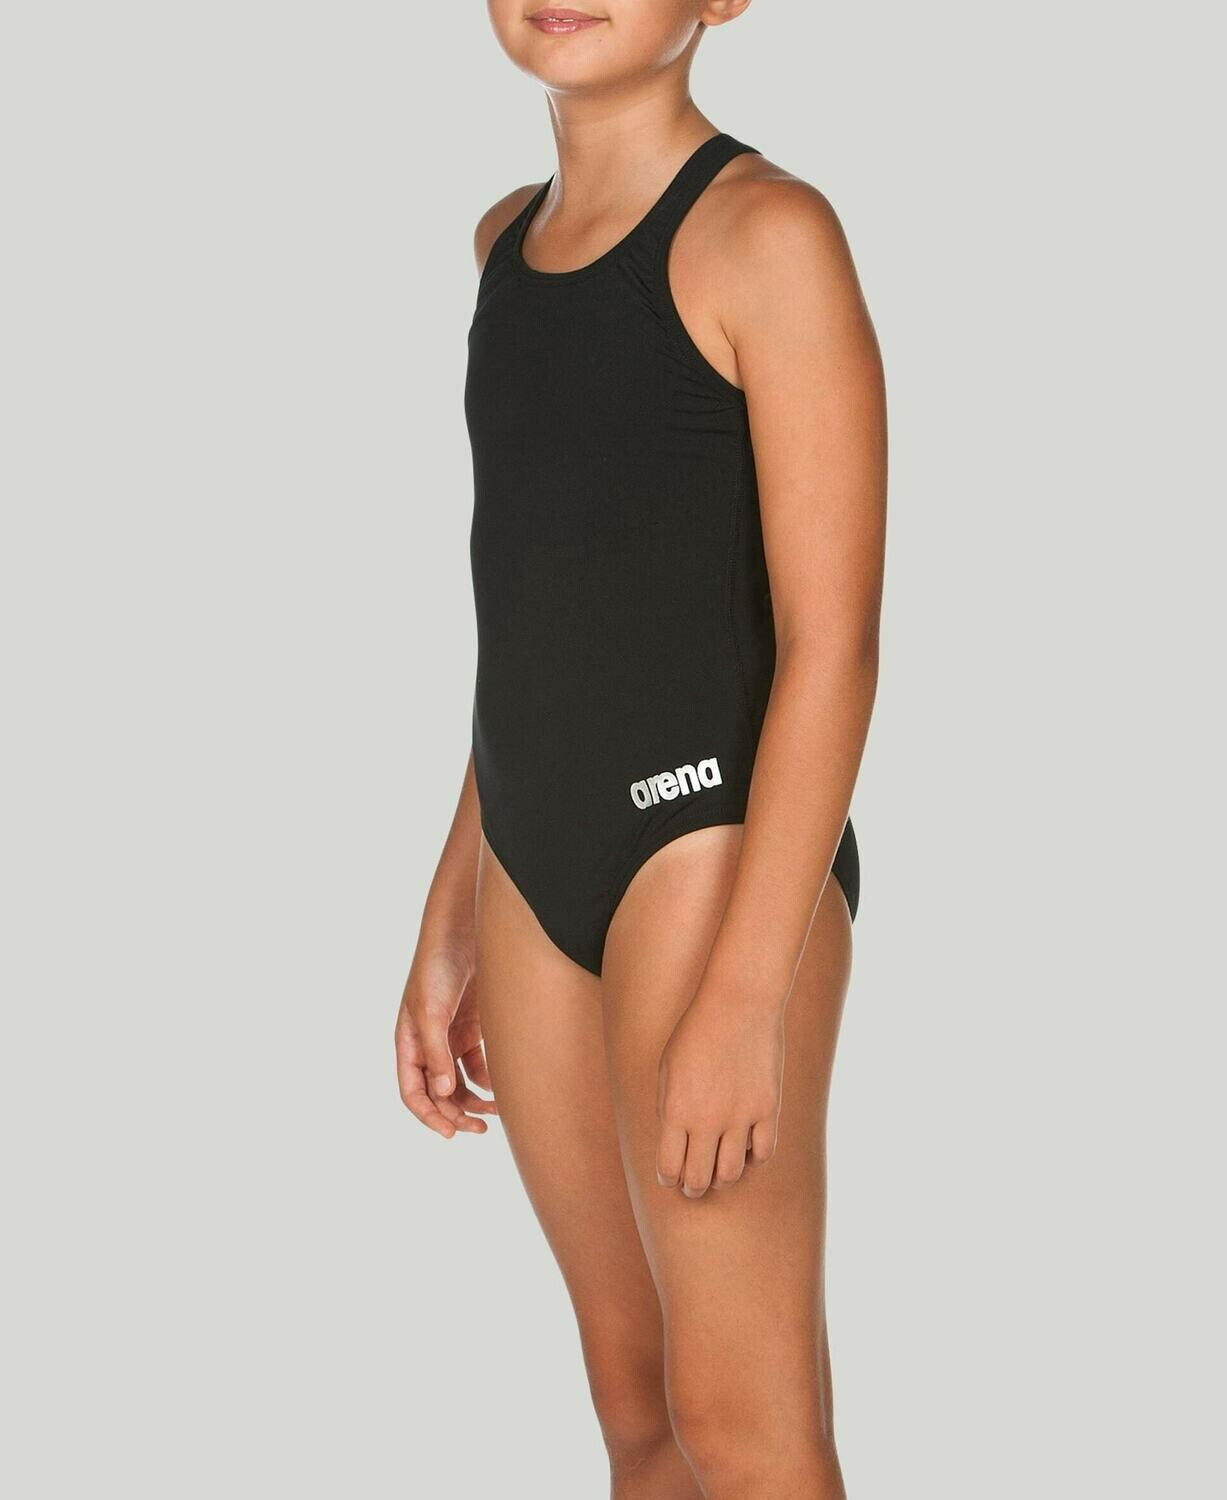 J1630005 MADISON SWIM PRO BACK 59120 FMYTH 22Y-28Y BLACK 055